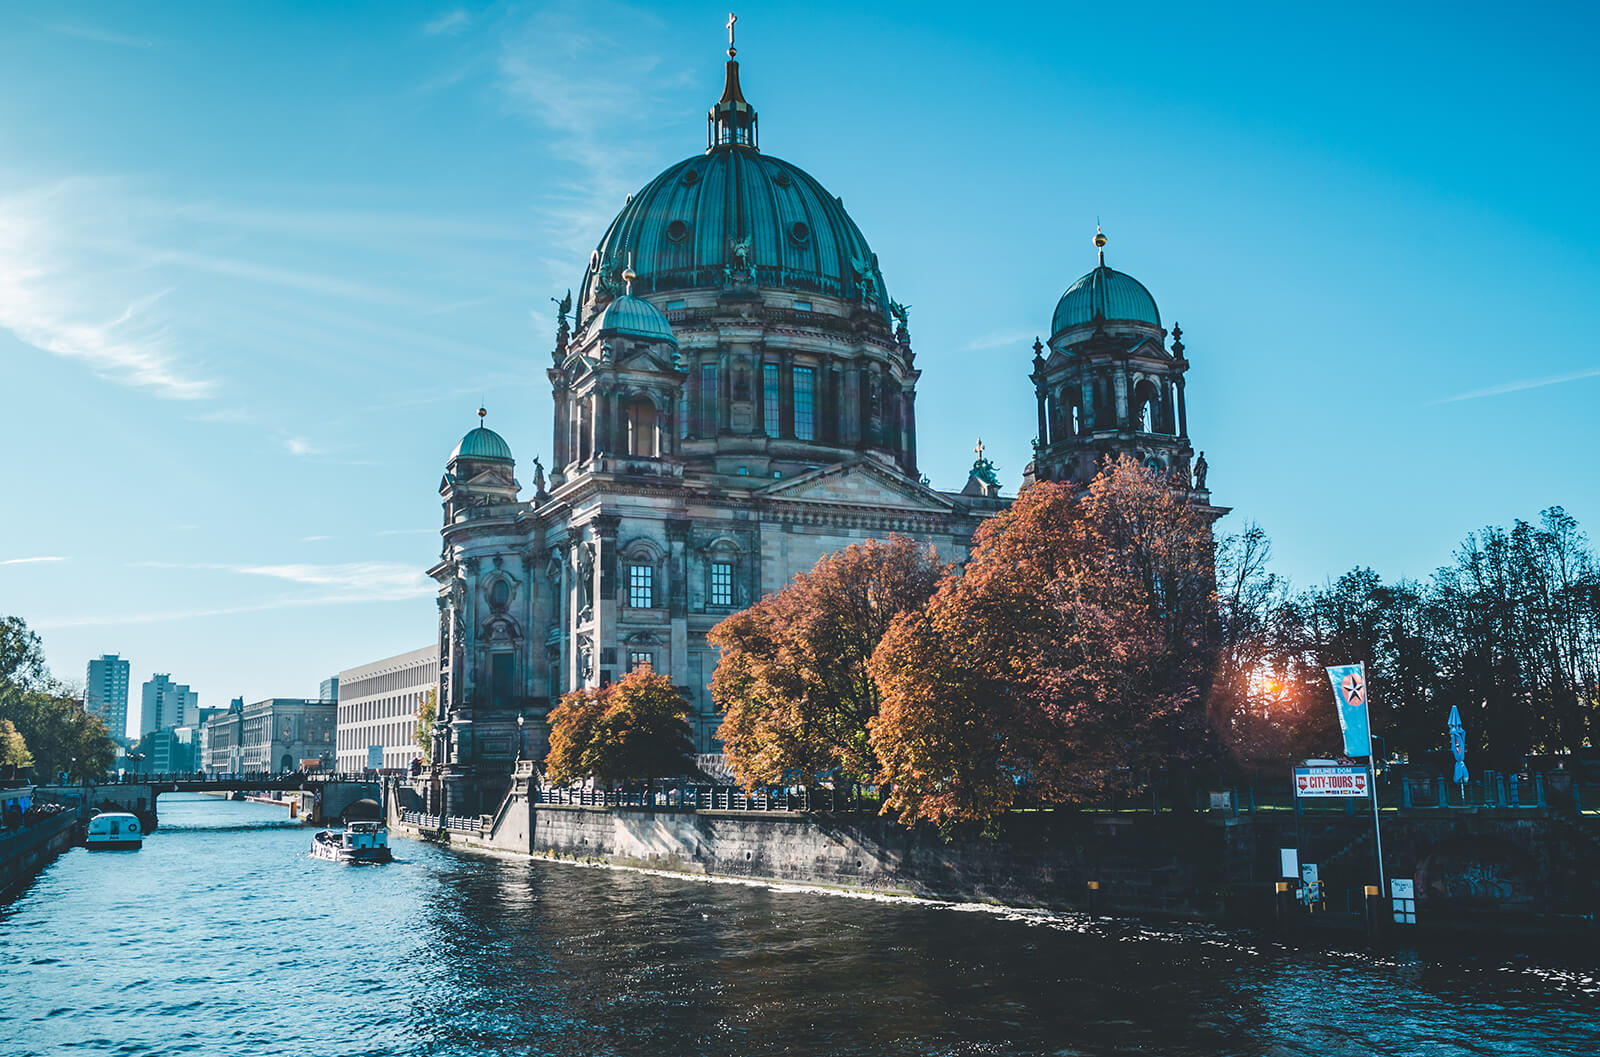 Berliner Dom, aka the Berlin Cathedral